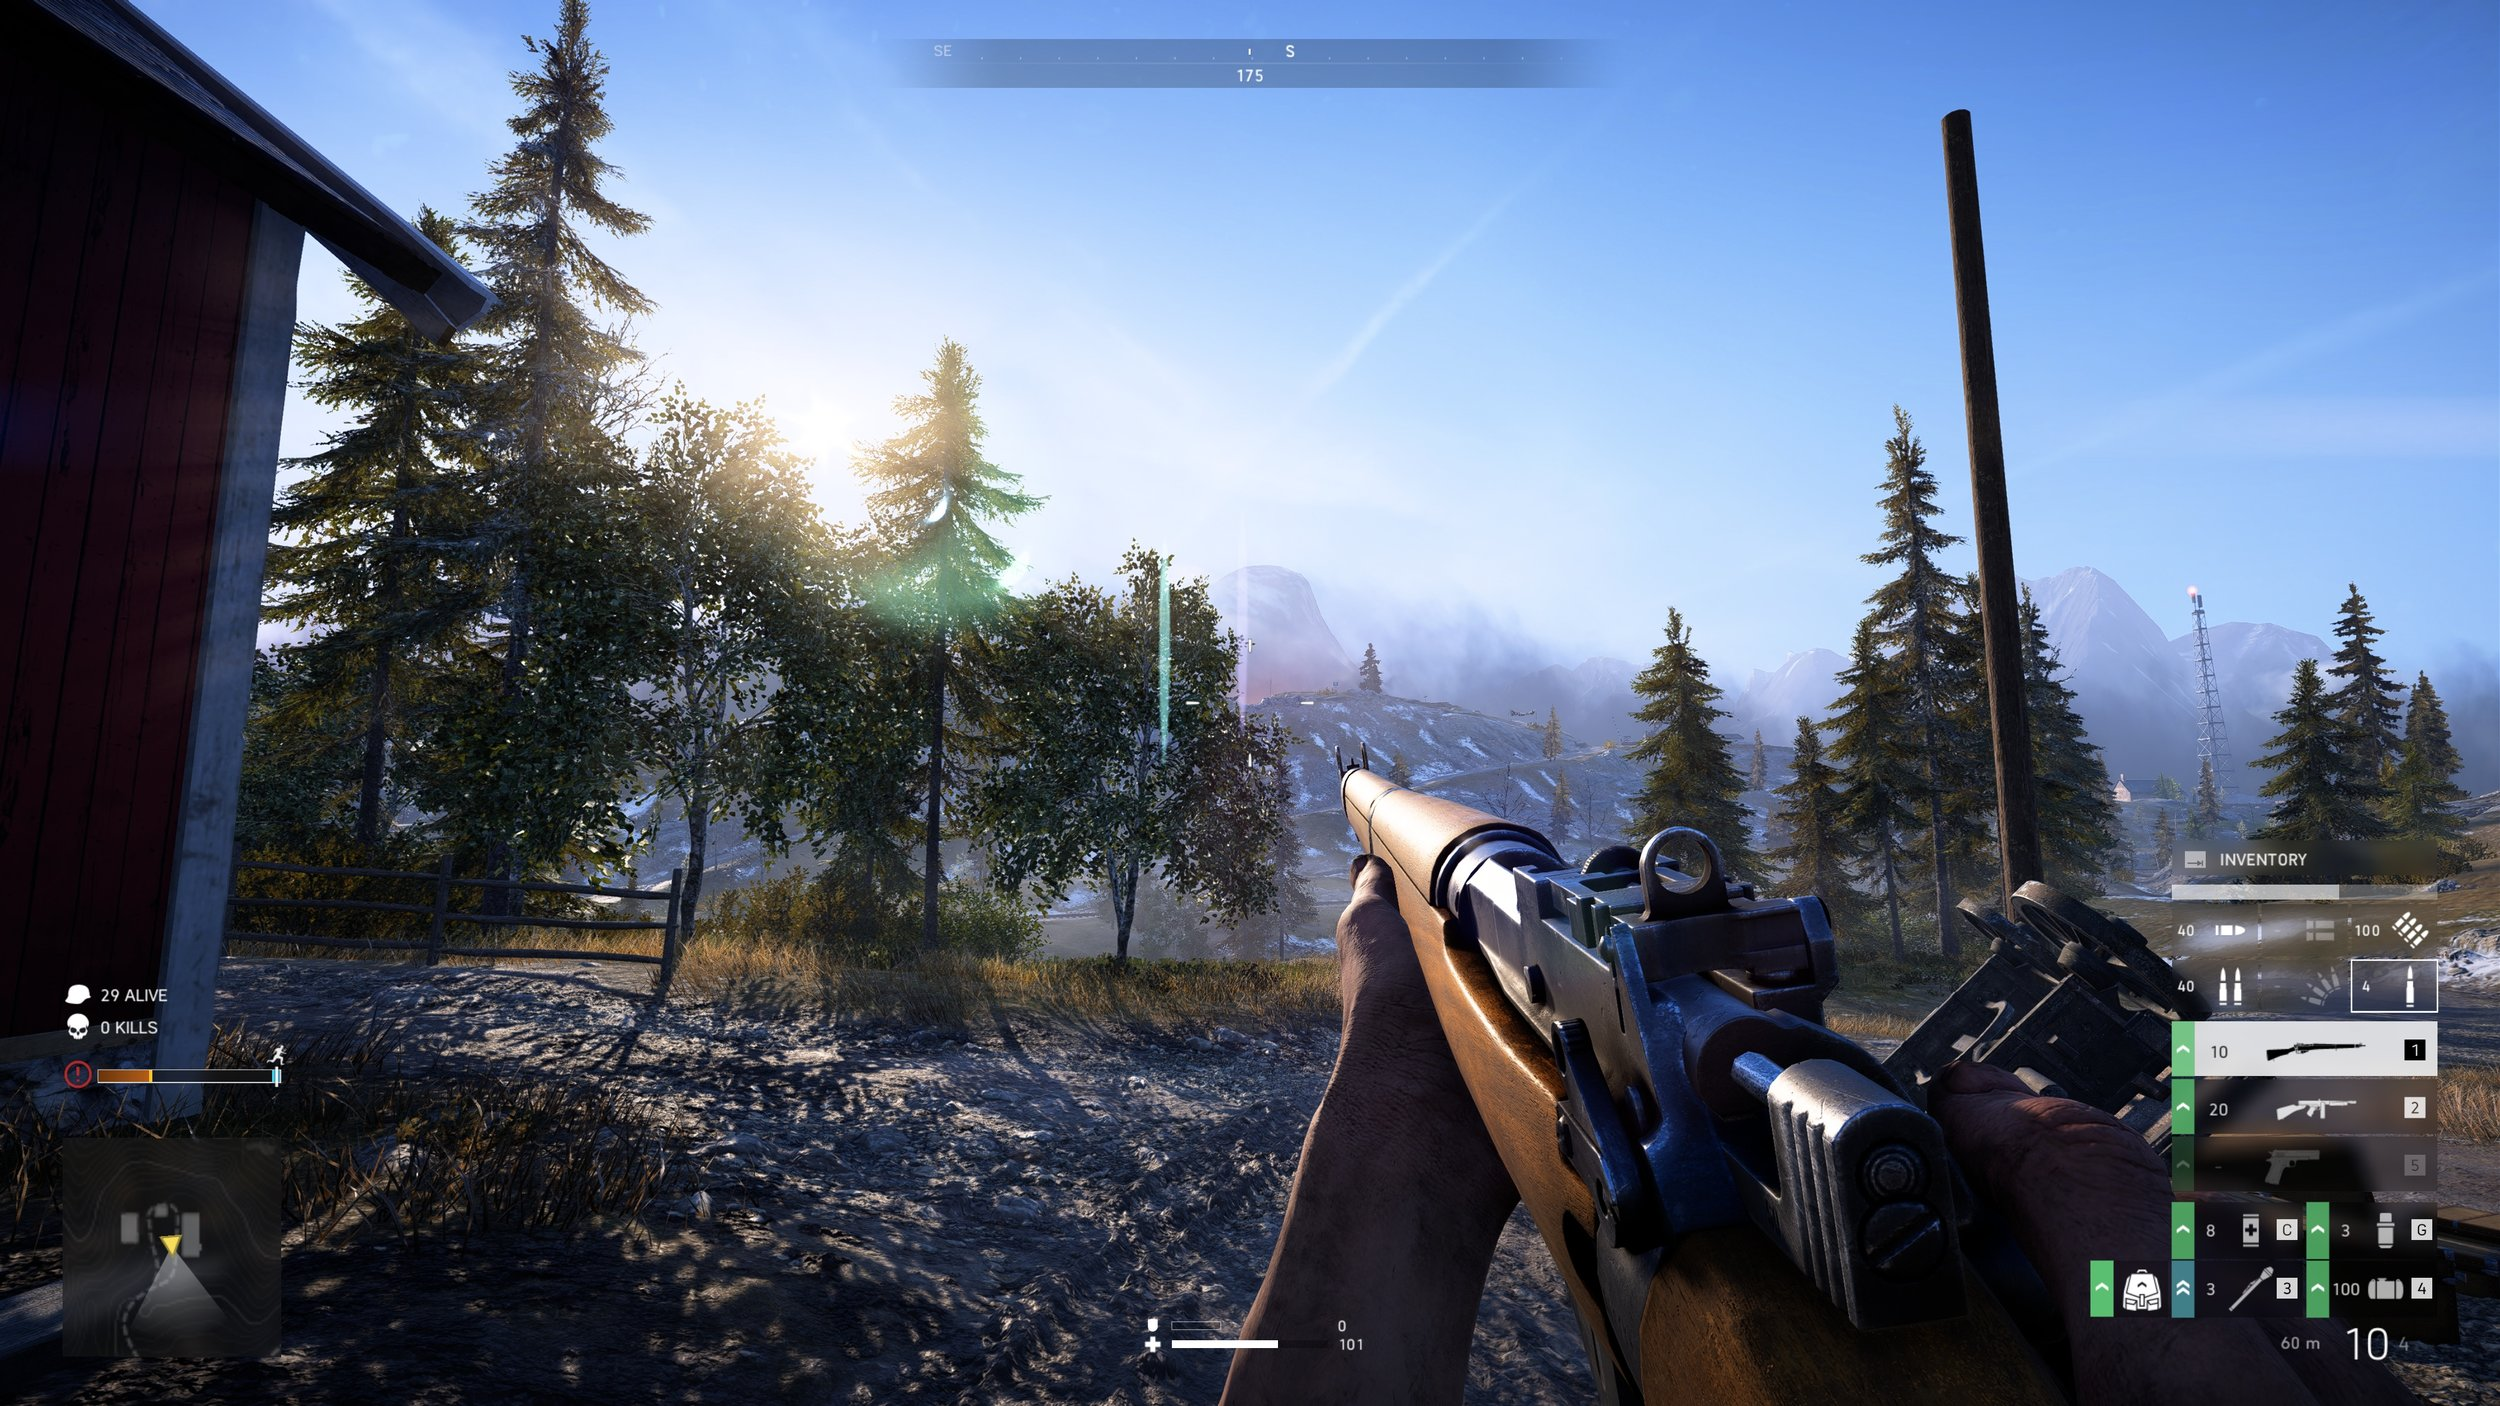 Ahhh… this is the most sunny, peaceful Battle Royale I've experienced yet…